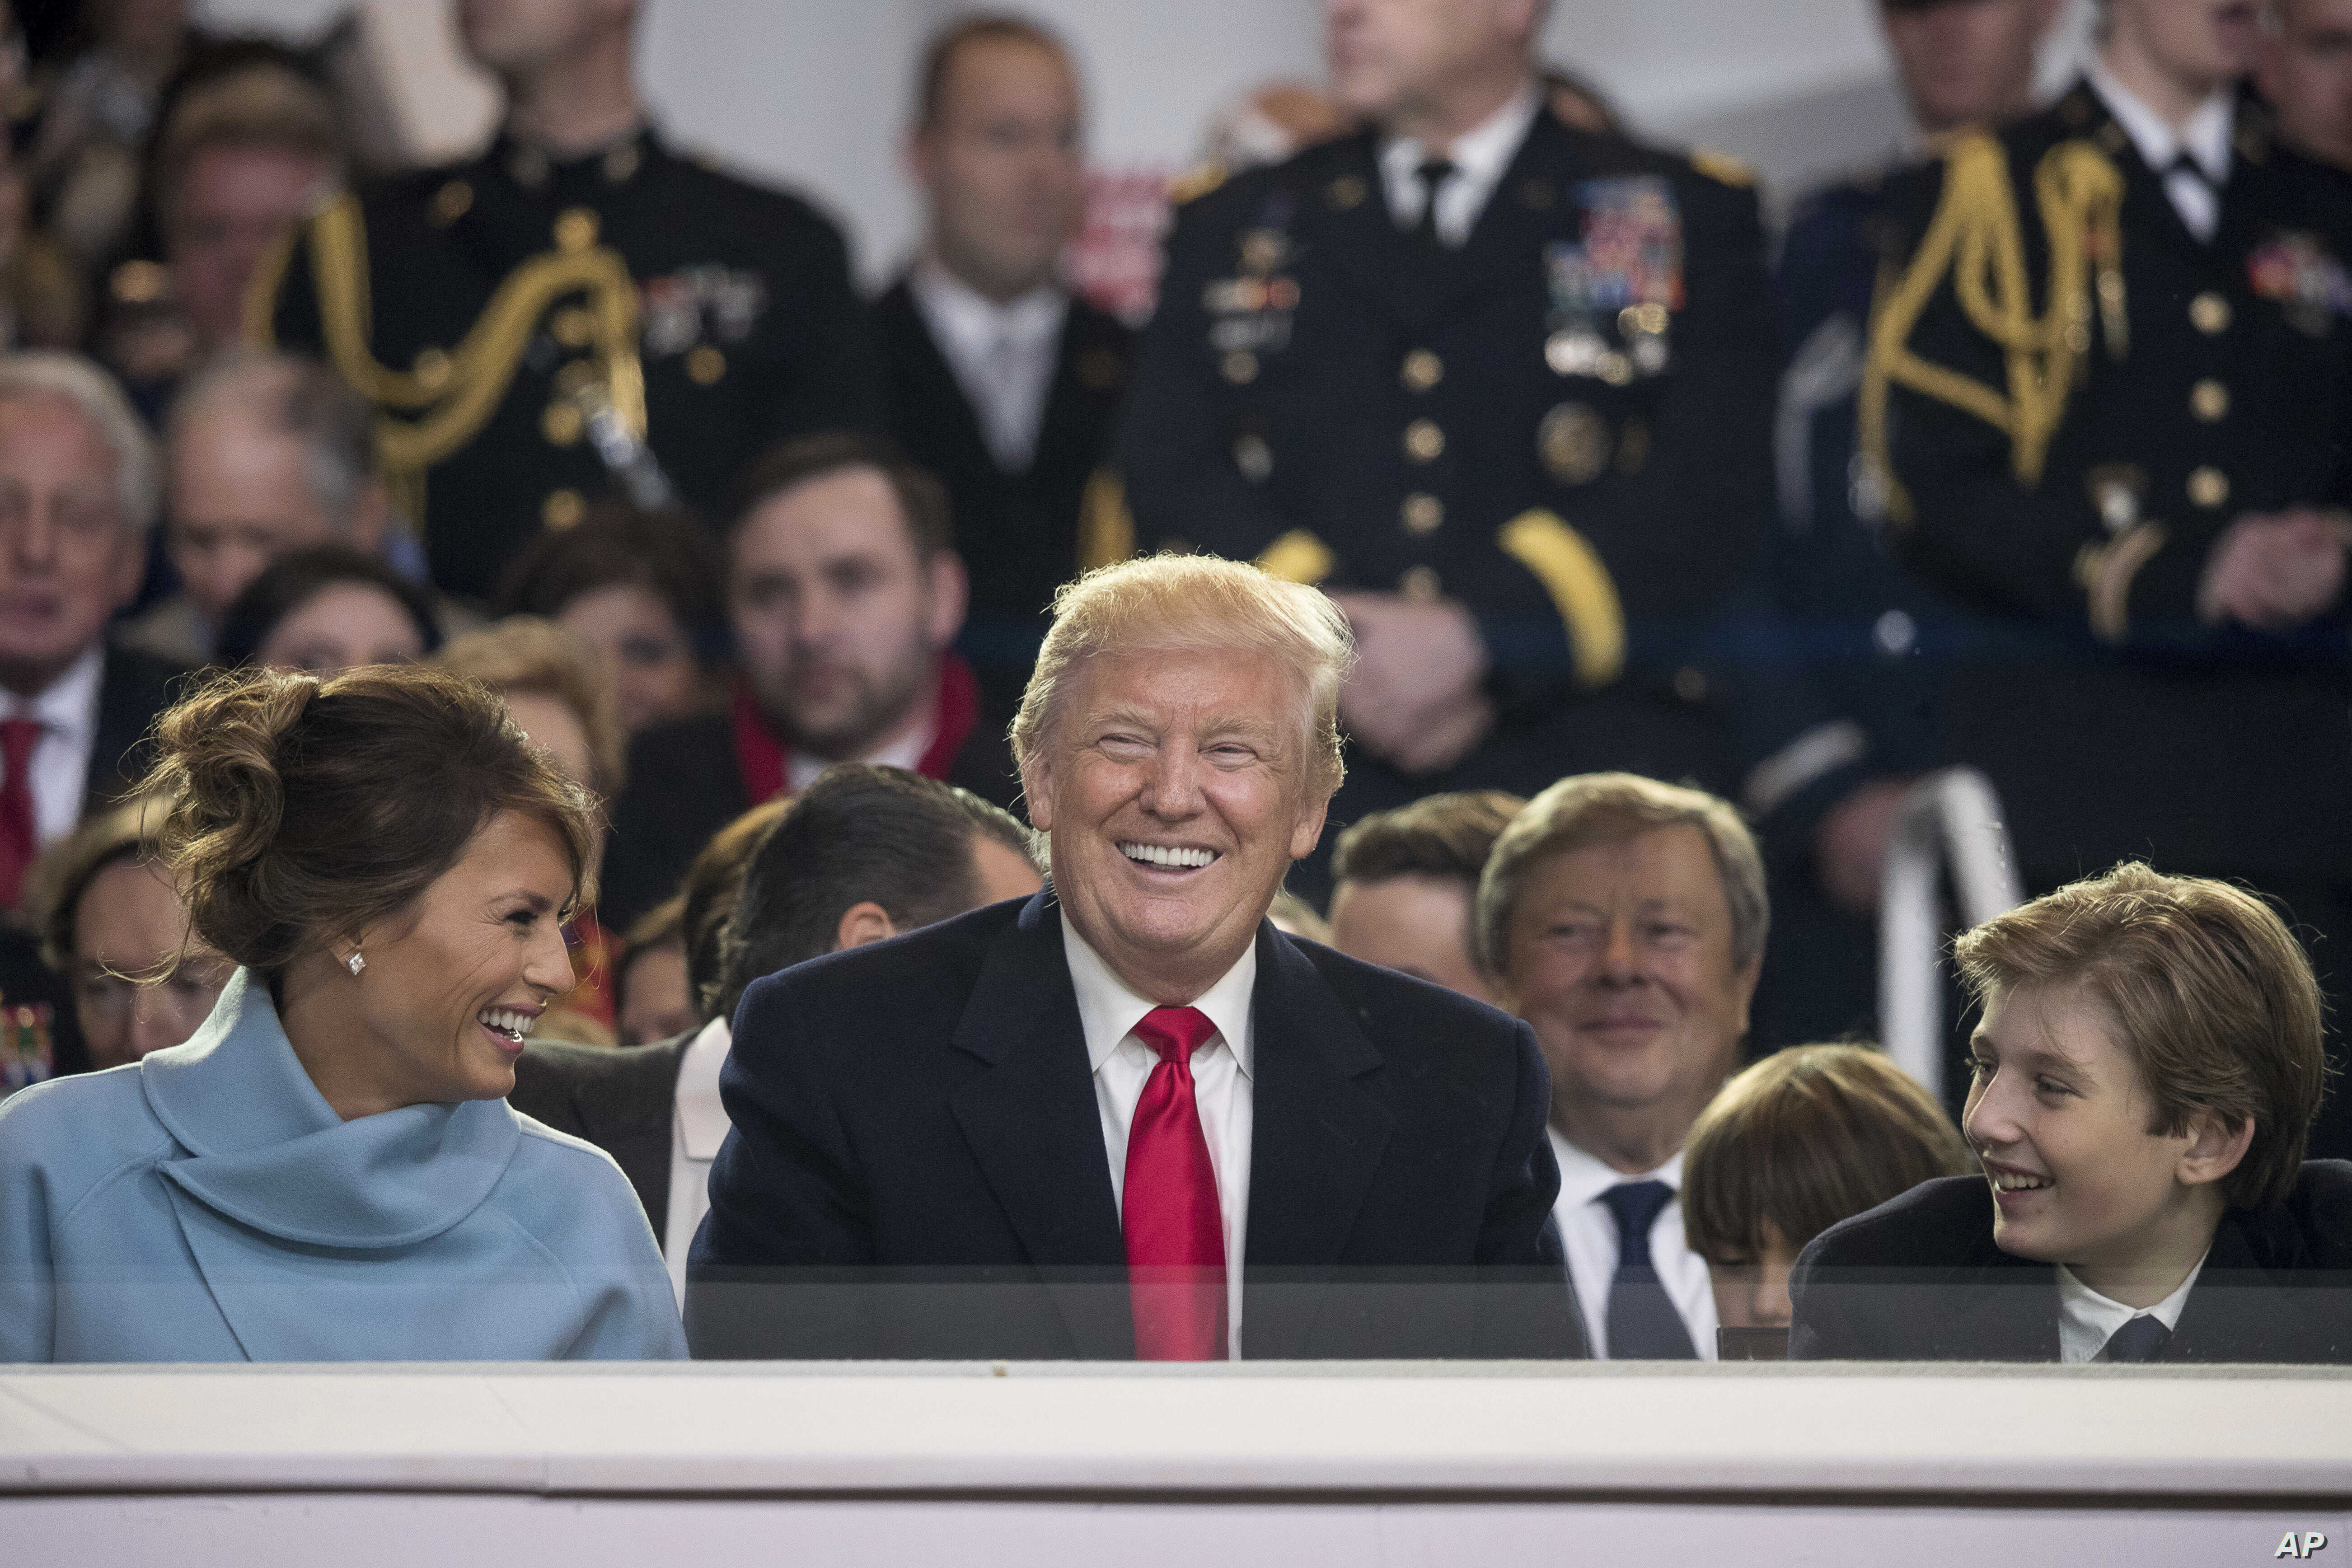 President Donald Trump shares a laugh with first lady Melania Trump and son Barron Trump as they sit in the reviewing stand during Trump's inaugural parade on Pennsylvania Avenue outside the White House in Washington, Jan. 20, 2017.